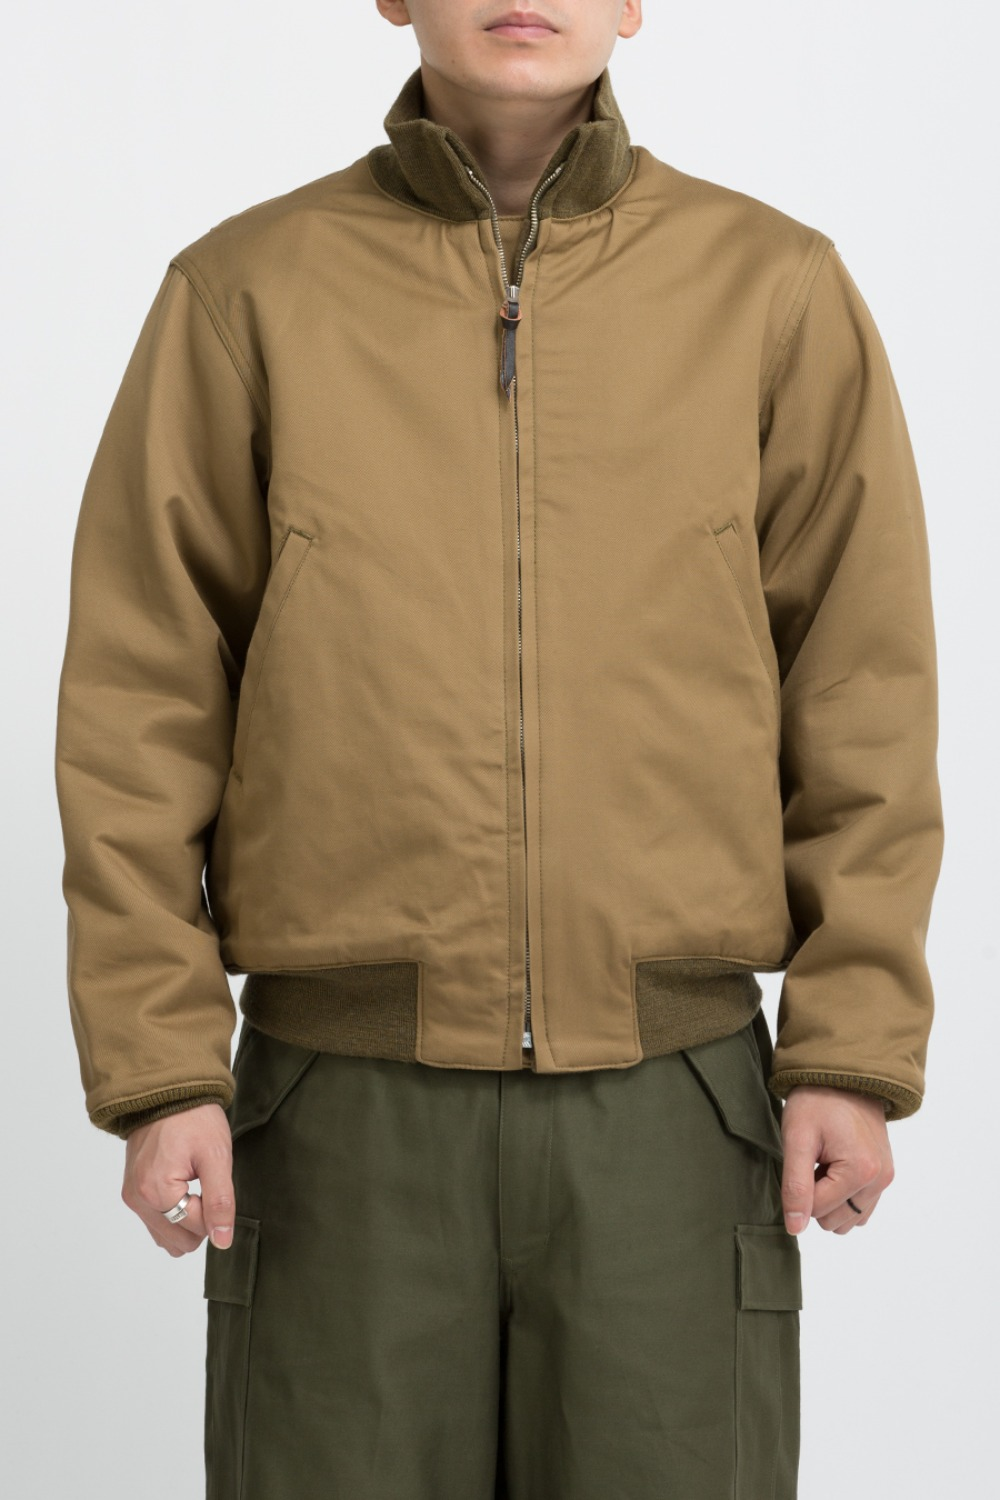 (RESTOCK)JACKET, COMBAT, WINTER REAL MCCOY MFG.CO. KHAKI